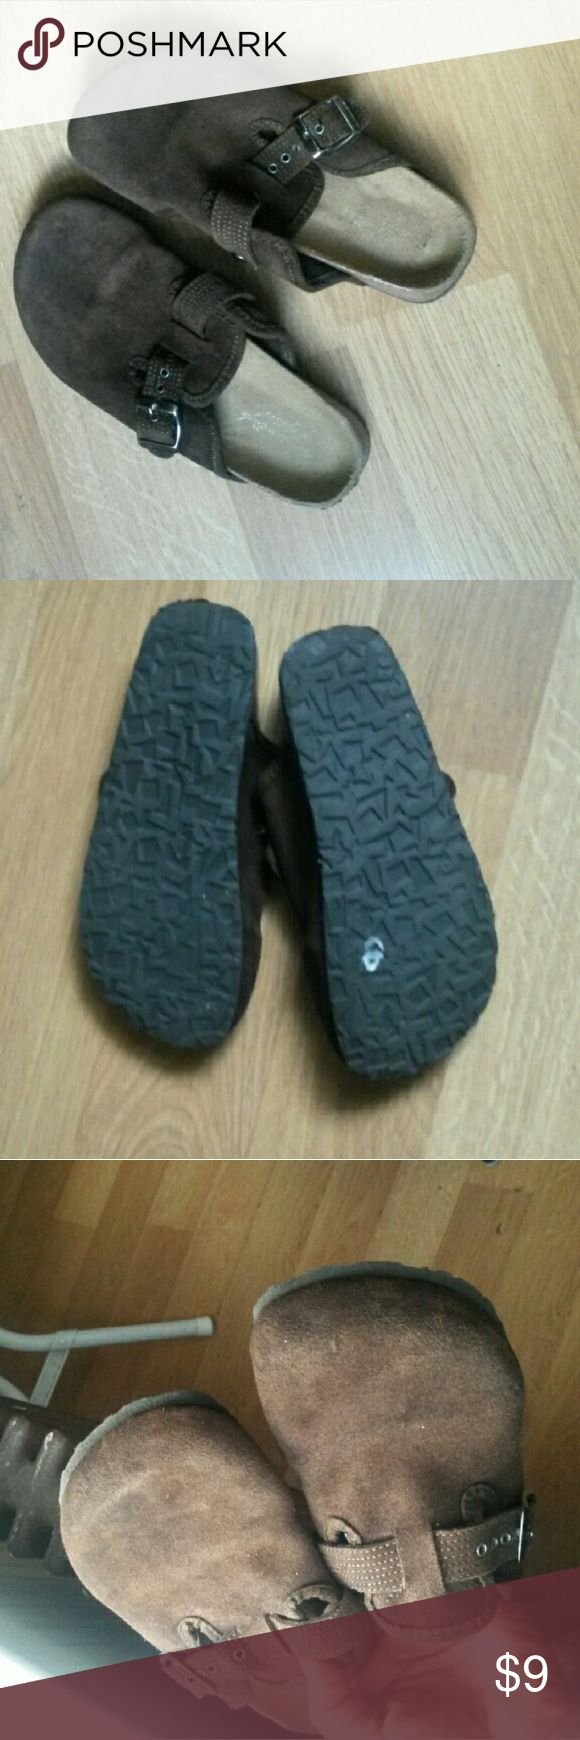 American Eagle Outfitters Brown Clogs Flats American Eagle Outfitters Clogs. Worn, in good condition. American Eagle Outfitters Shoes Mules & Clogs